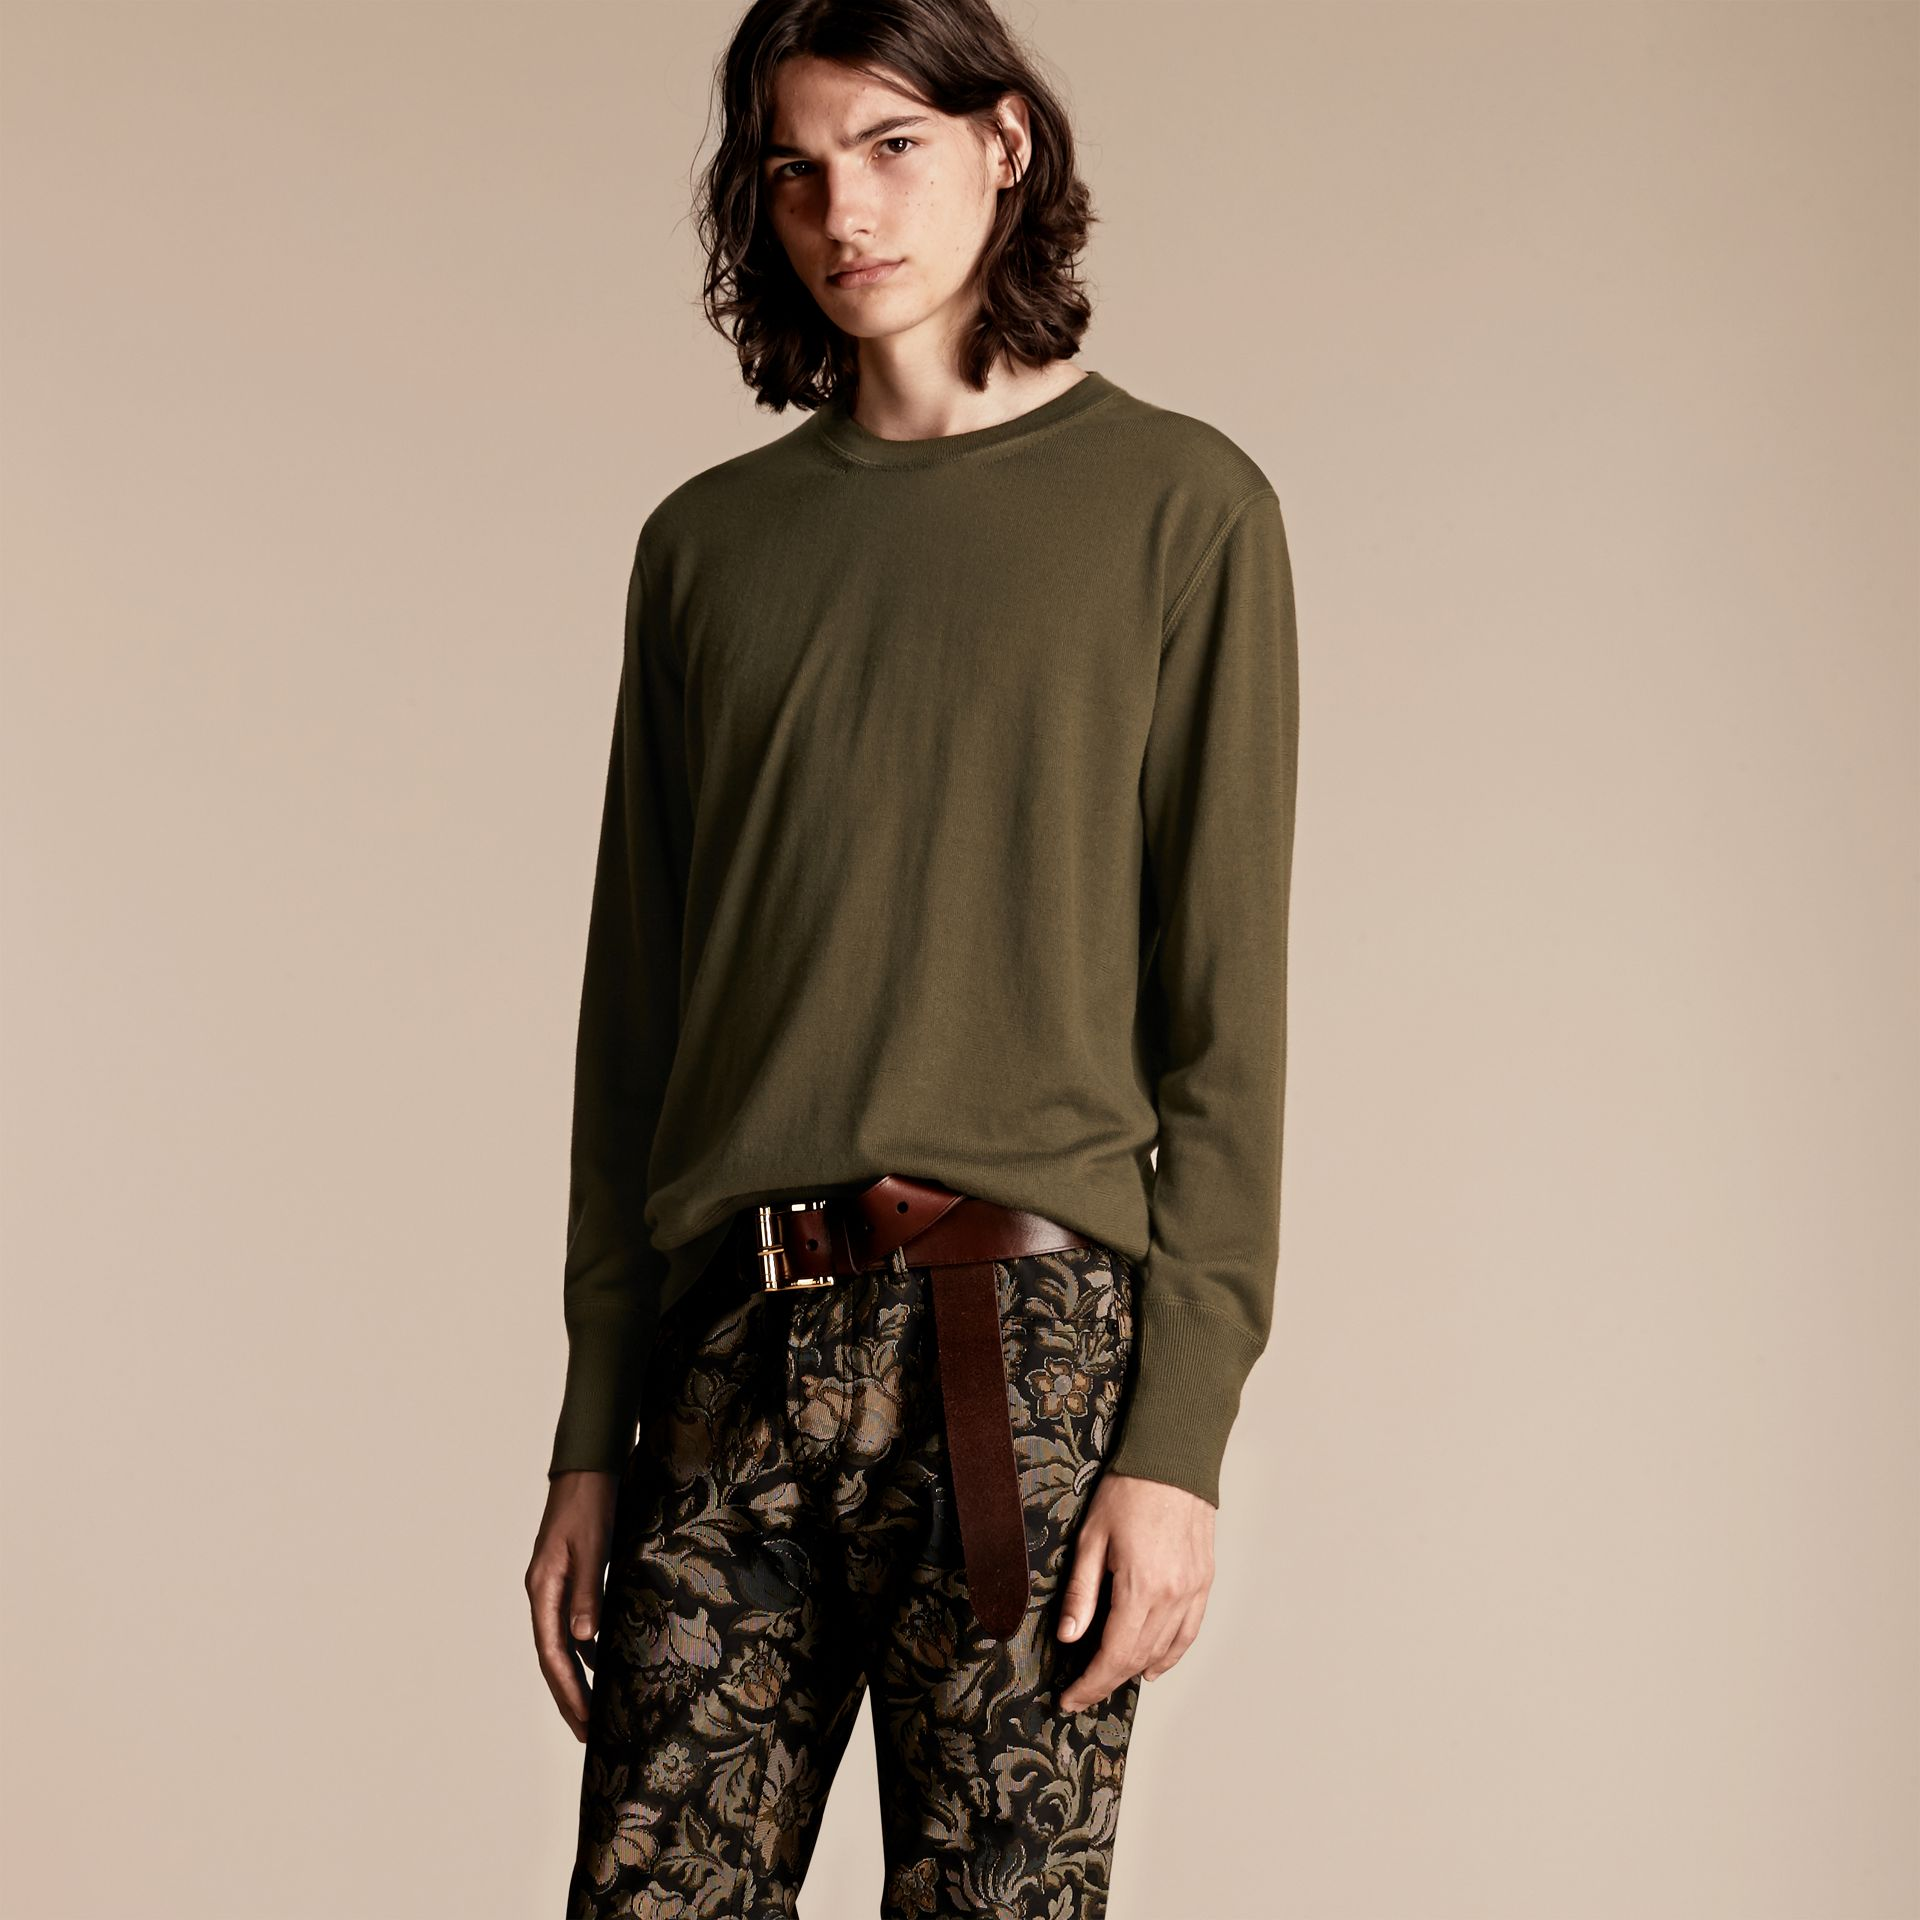 Military olive Crew Neck Cashmere Sweater Military Olive - gallery image 6